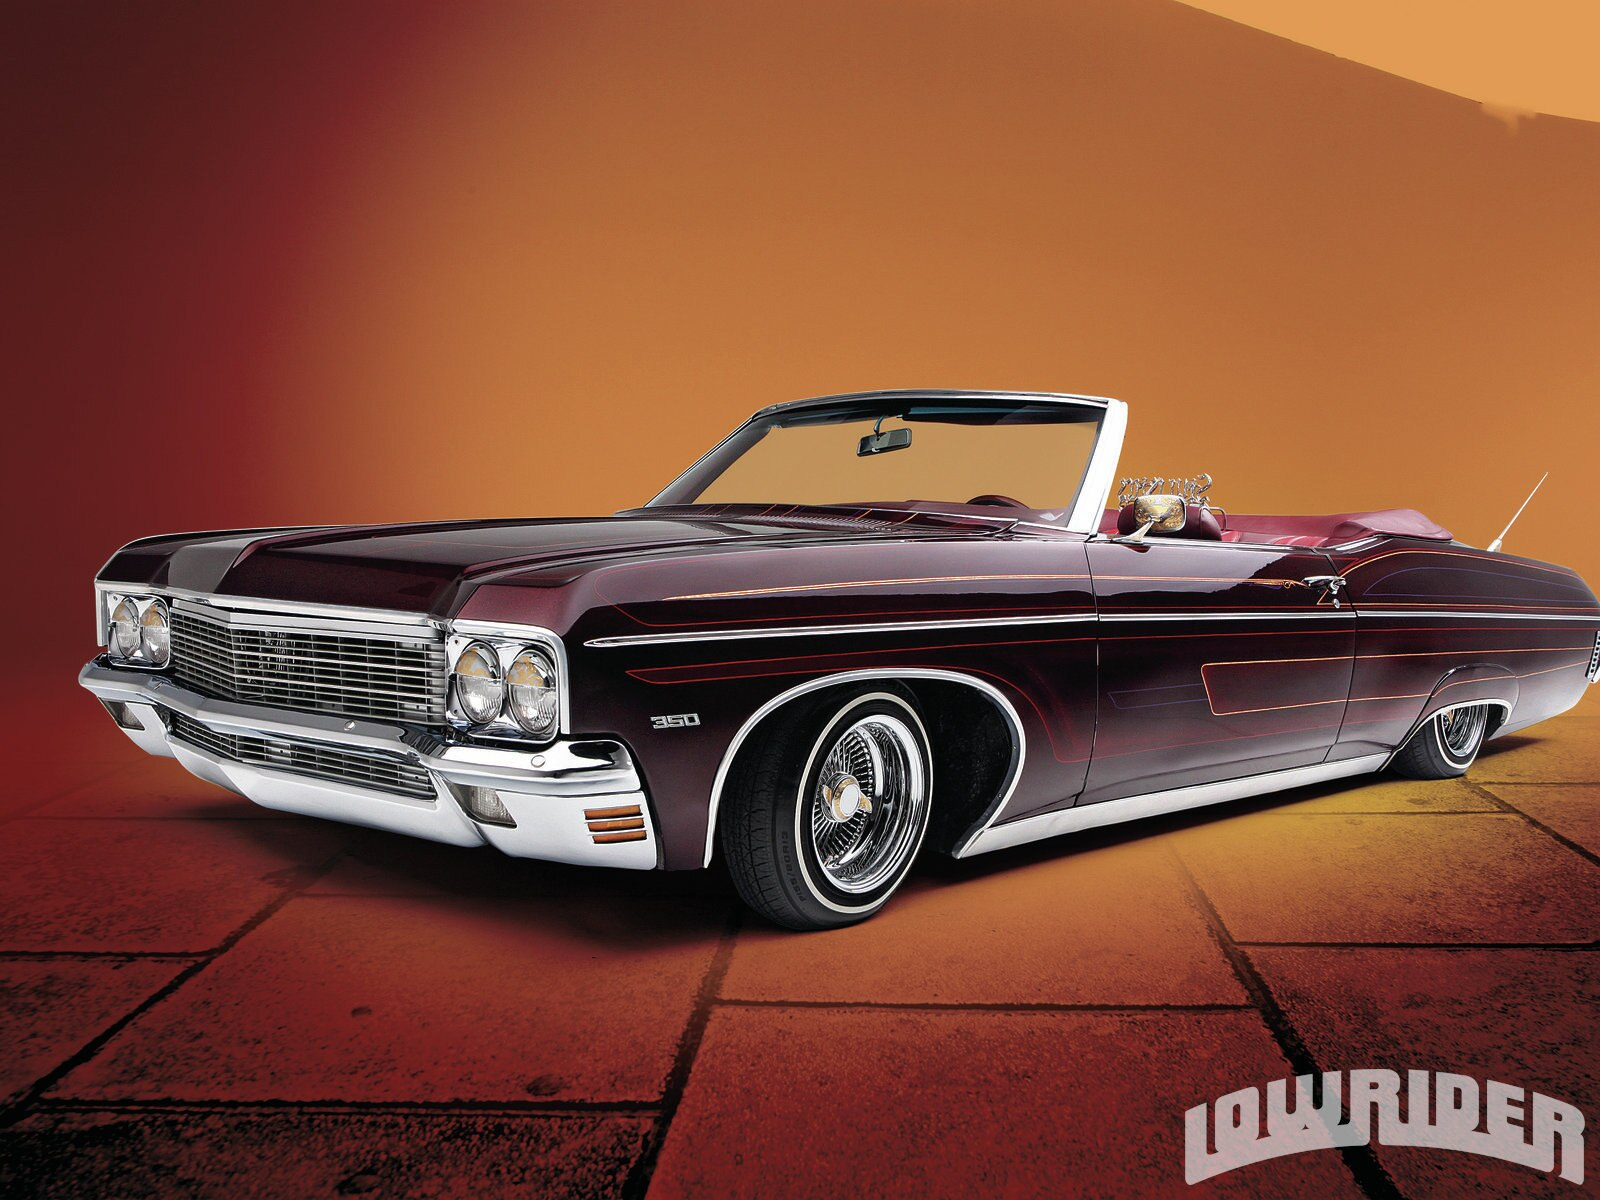 1112-lrmp-02-o-1970-chevrolet-impala-convertible-driver-side-view2